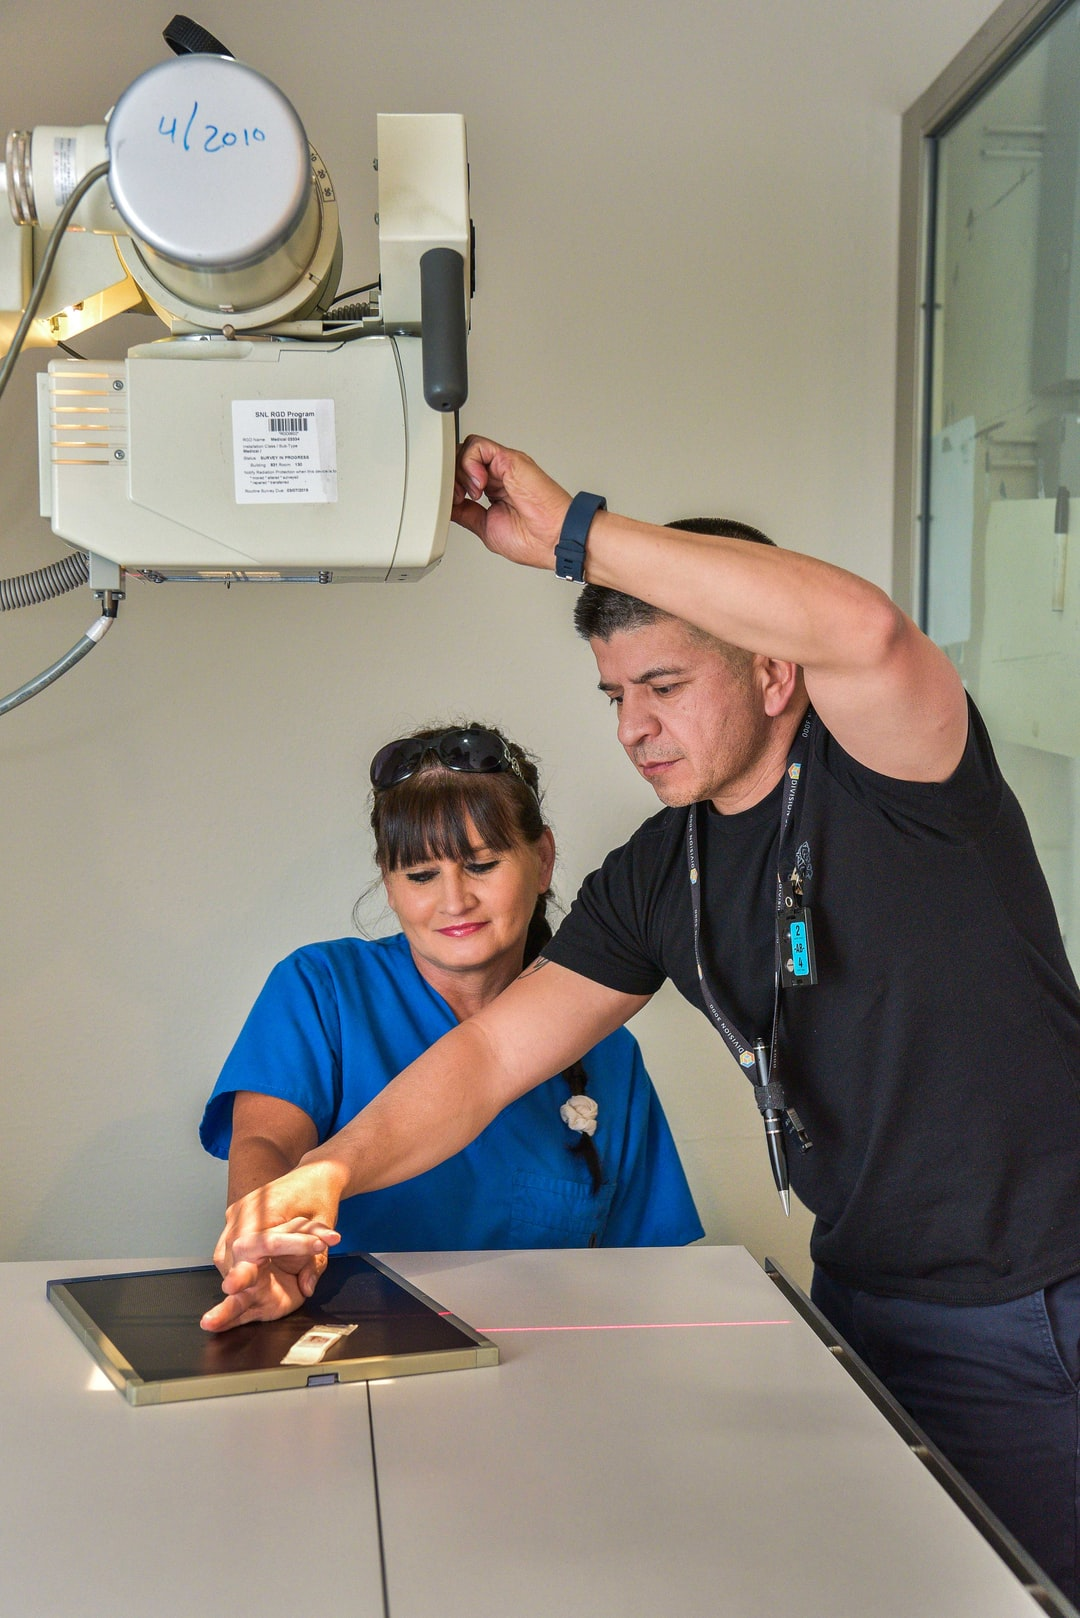 X-ray camera is aimed on hand at Sandia's onsite medical facility.